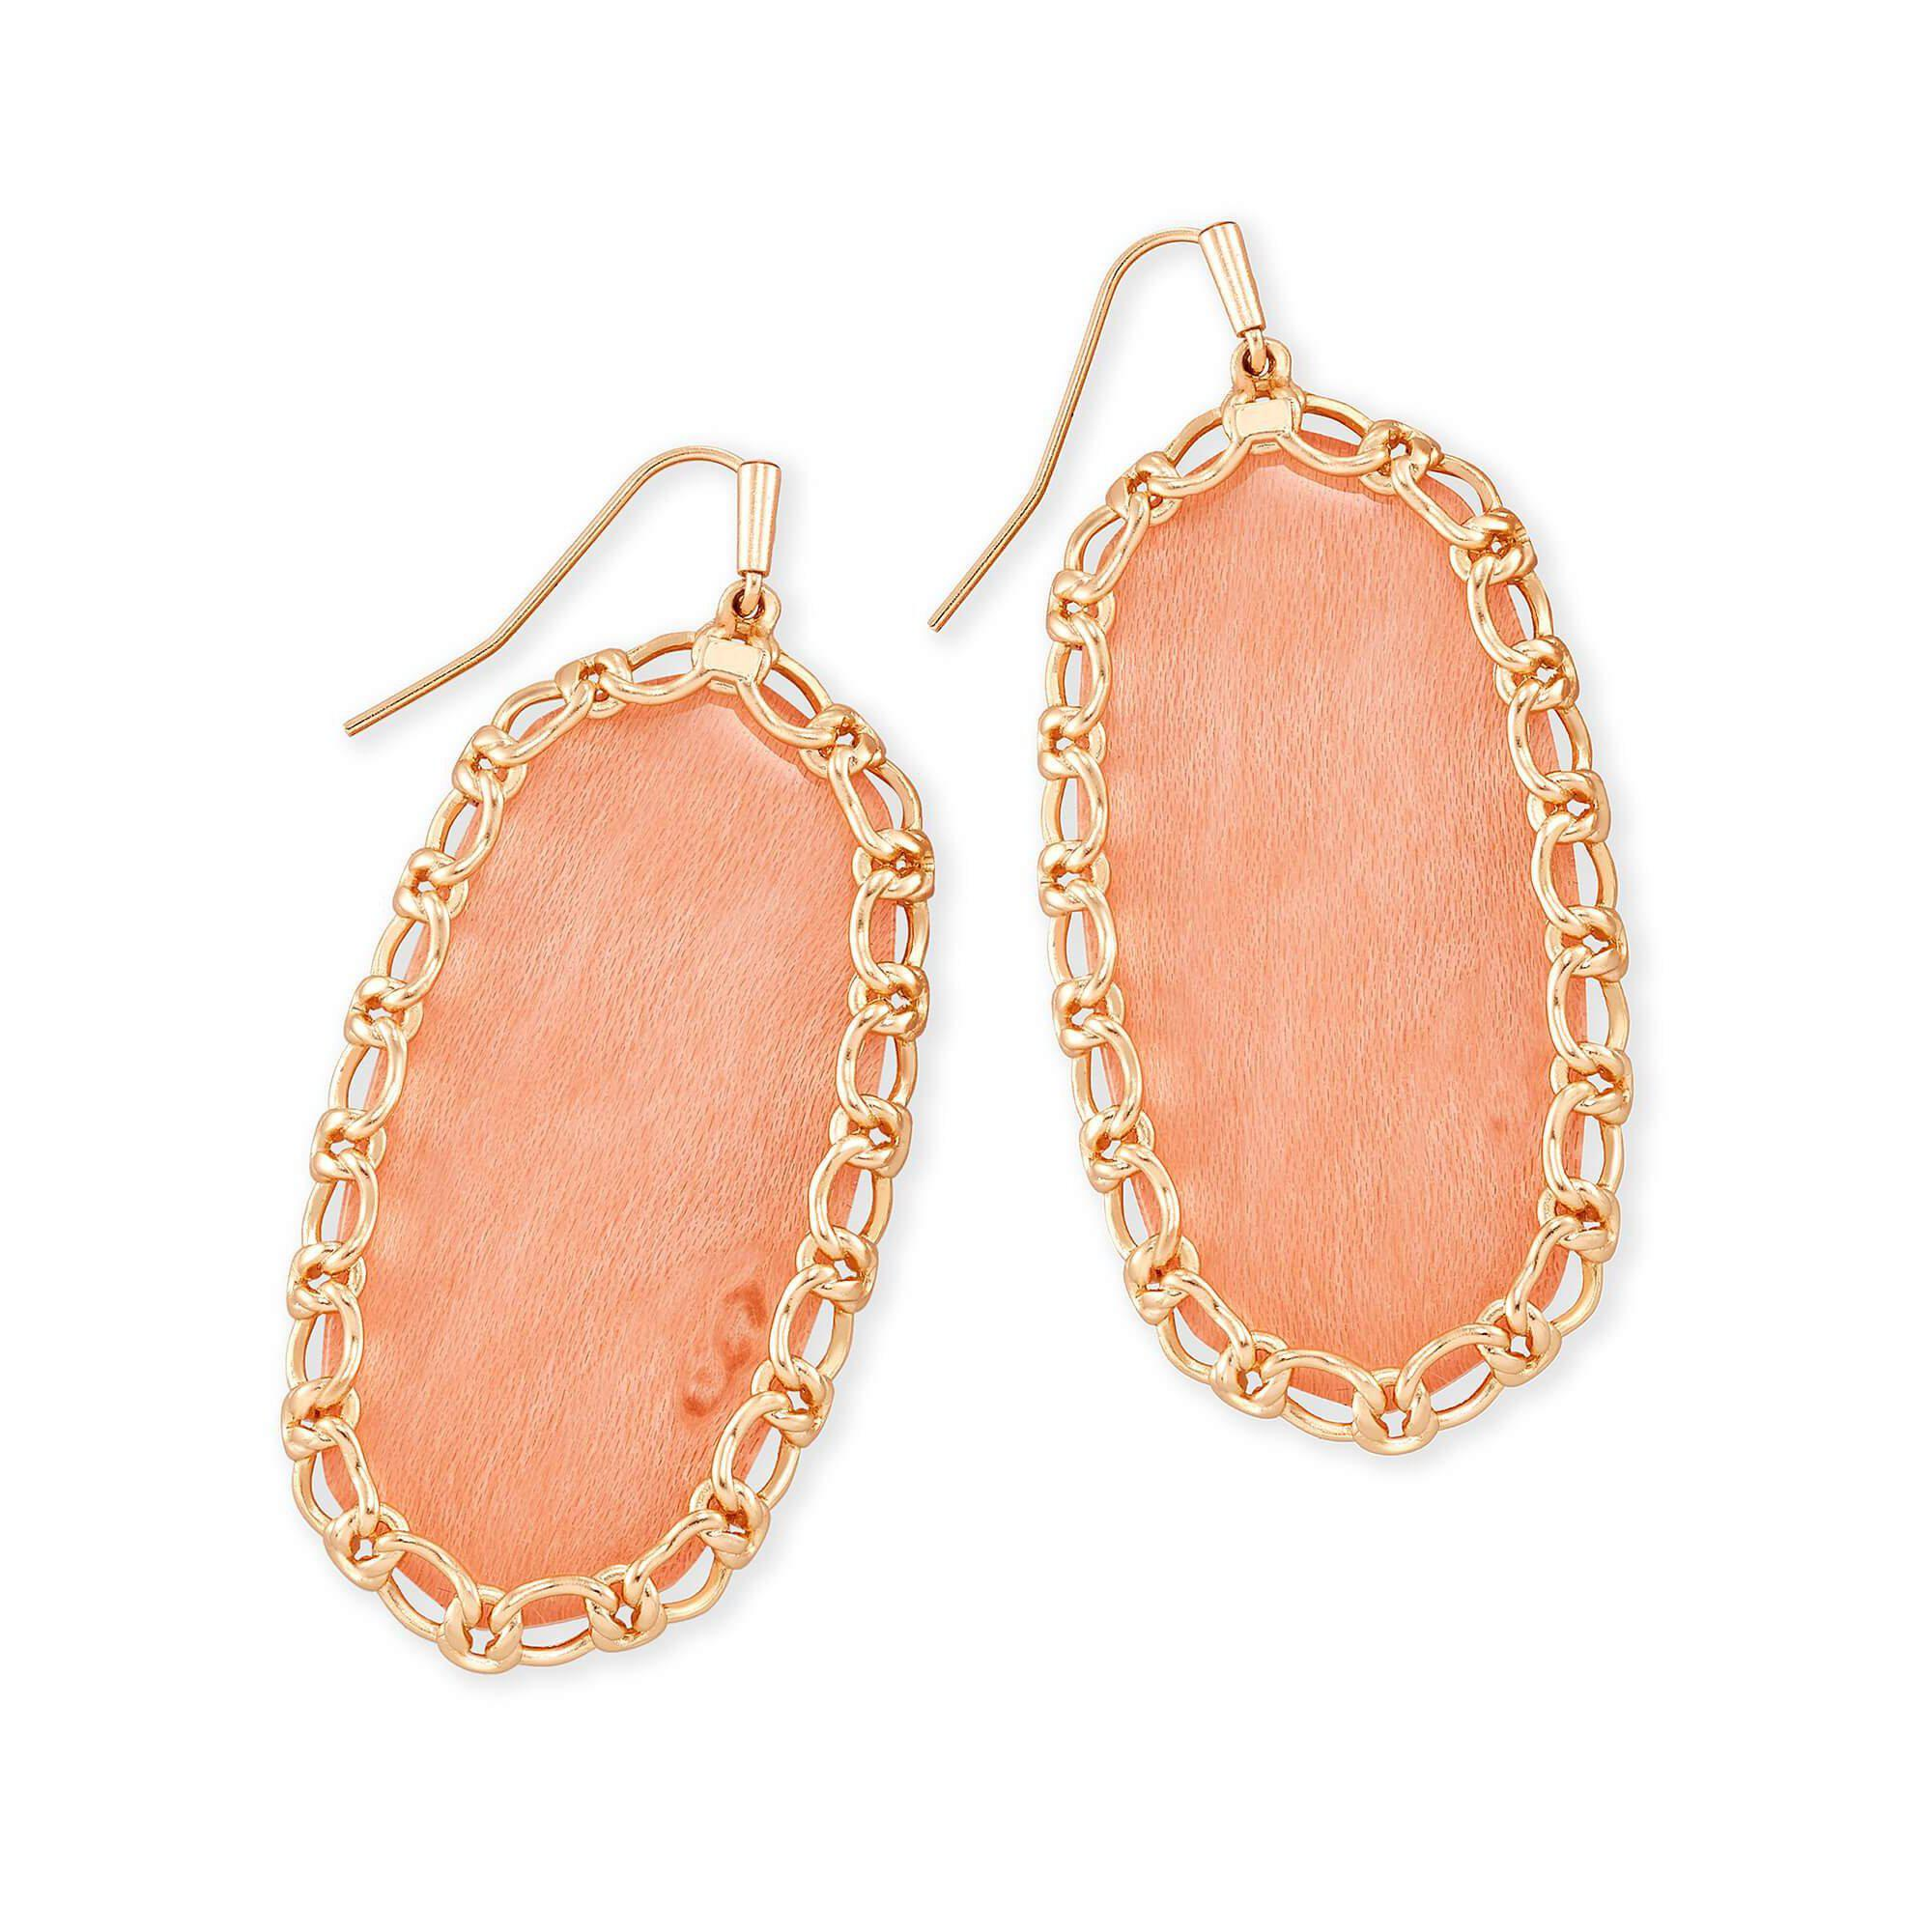 Macrame Danielle Earring in Rsg Blush Wood